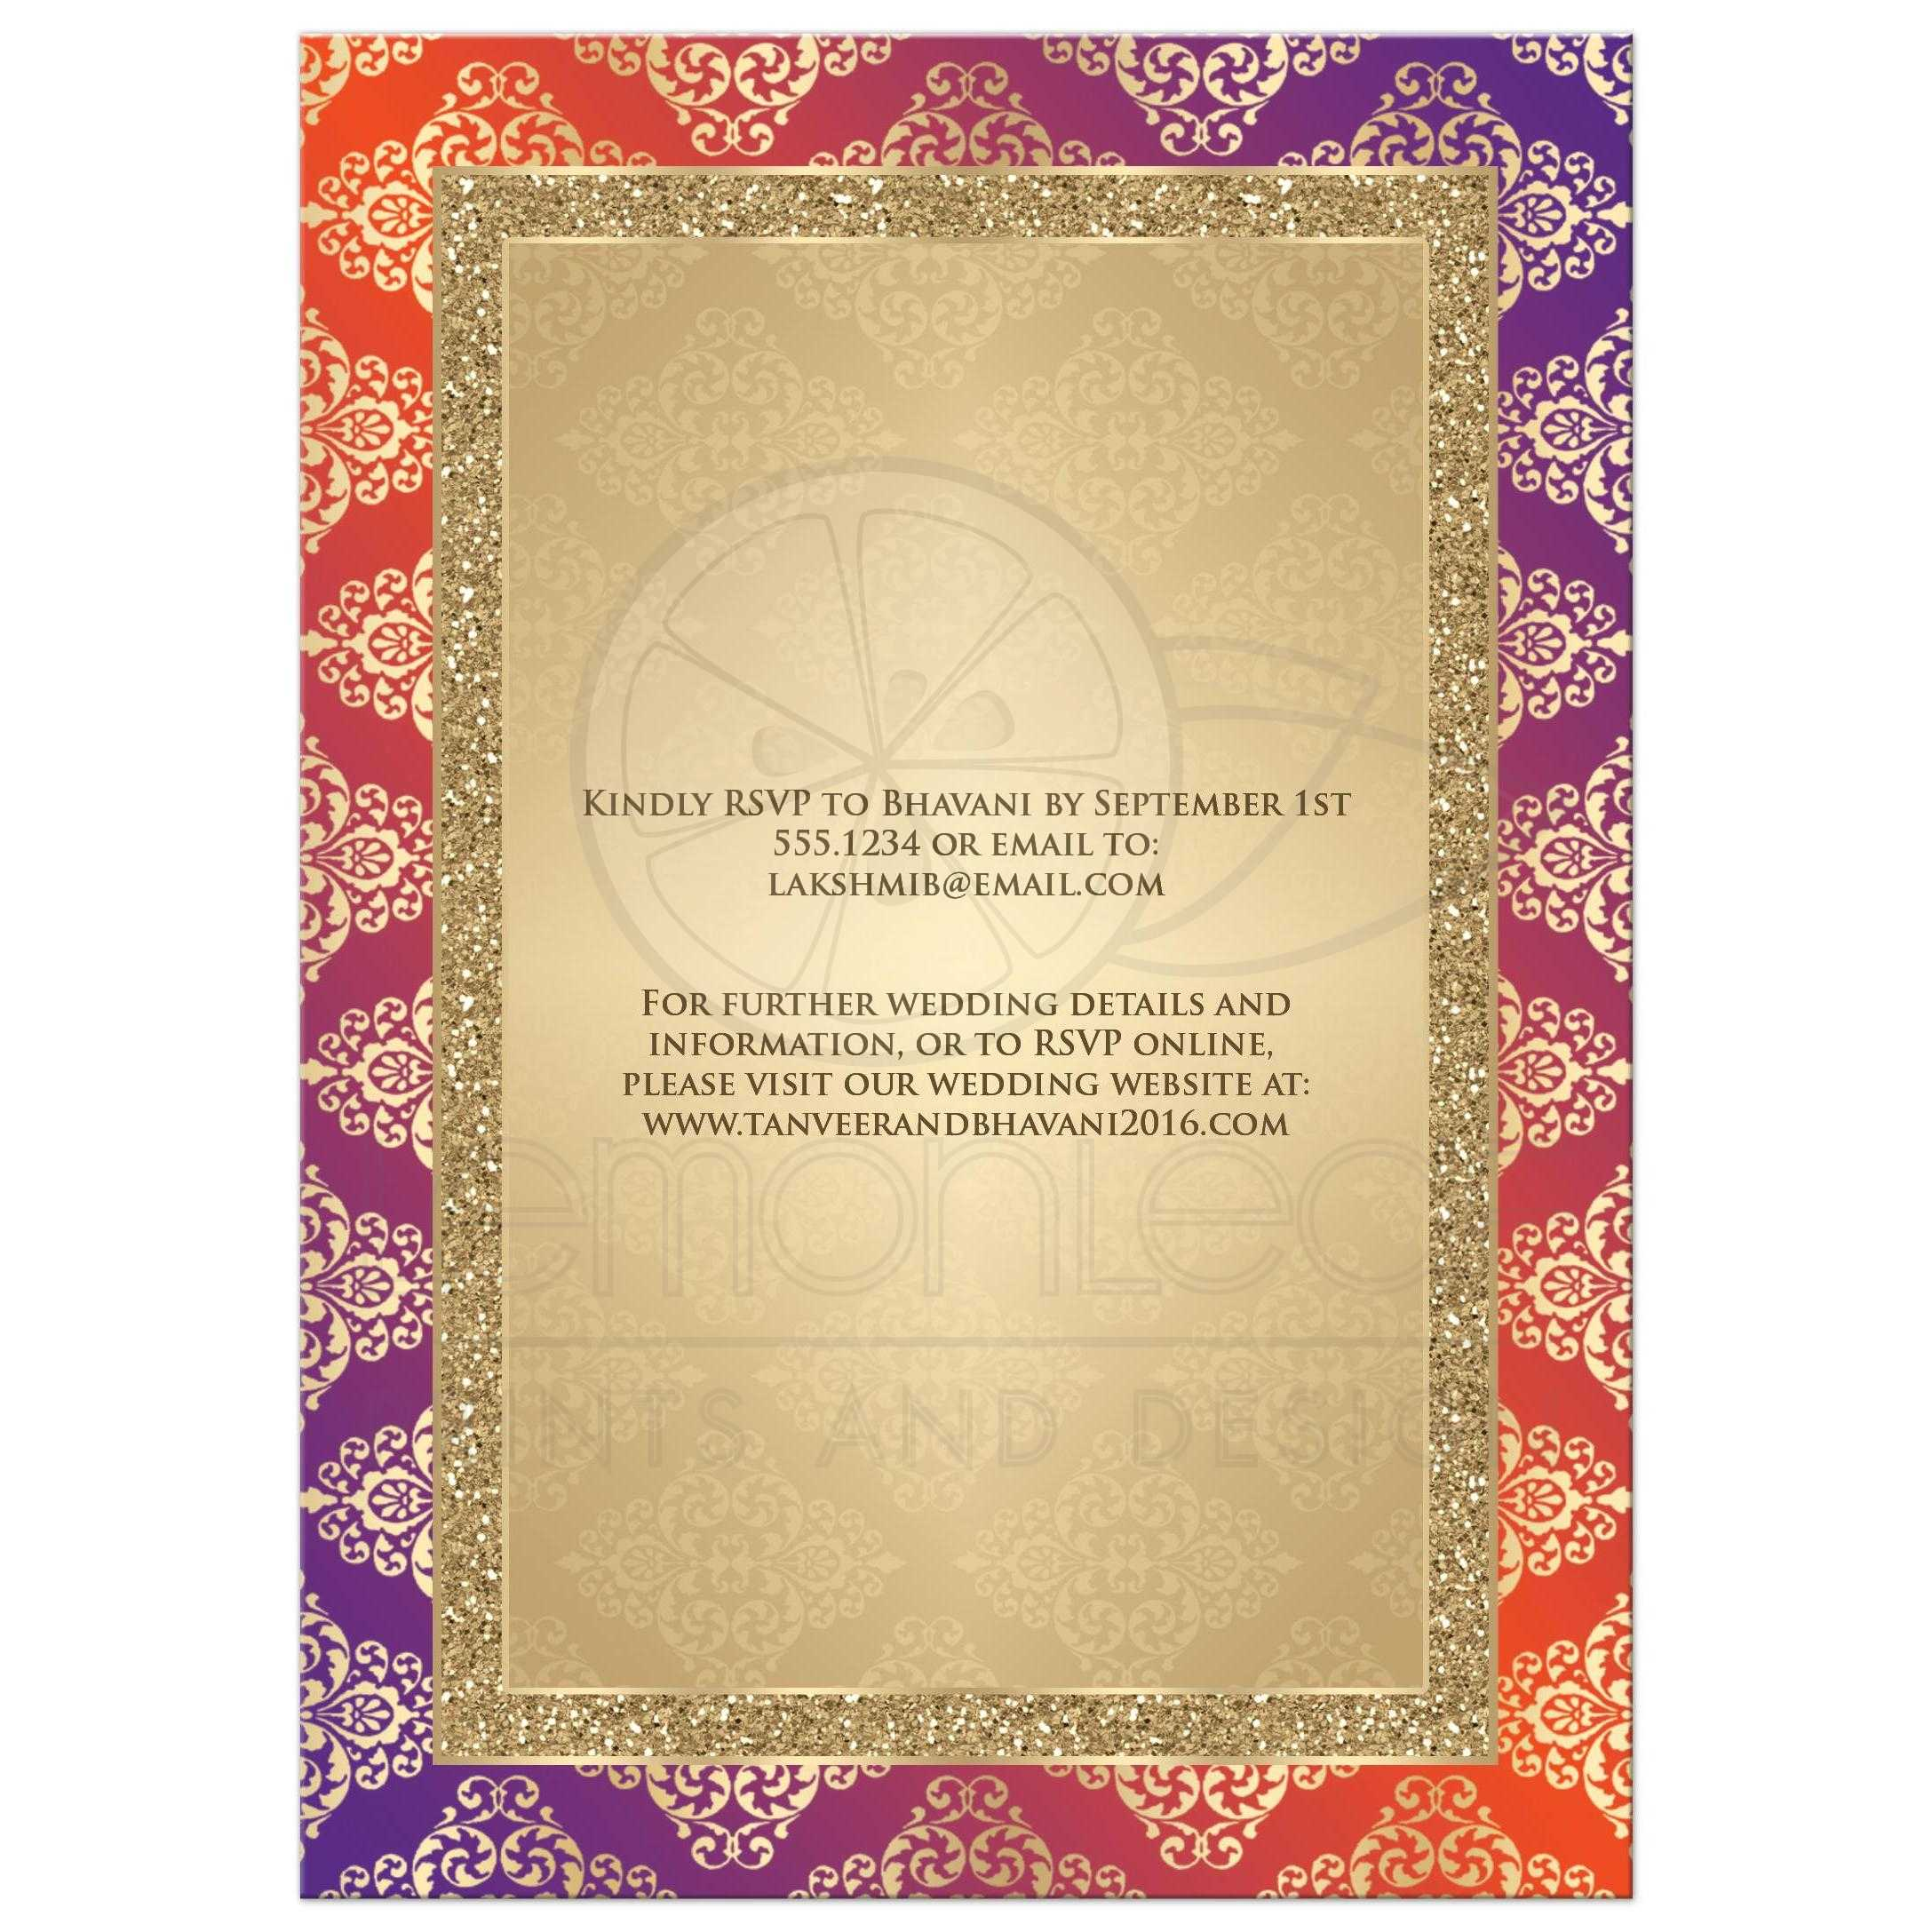 Wedding Invitation | Orange, Purple, Gold Damask | Faux Gold Glitter ...